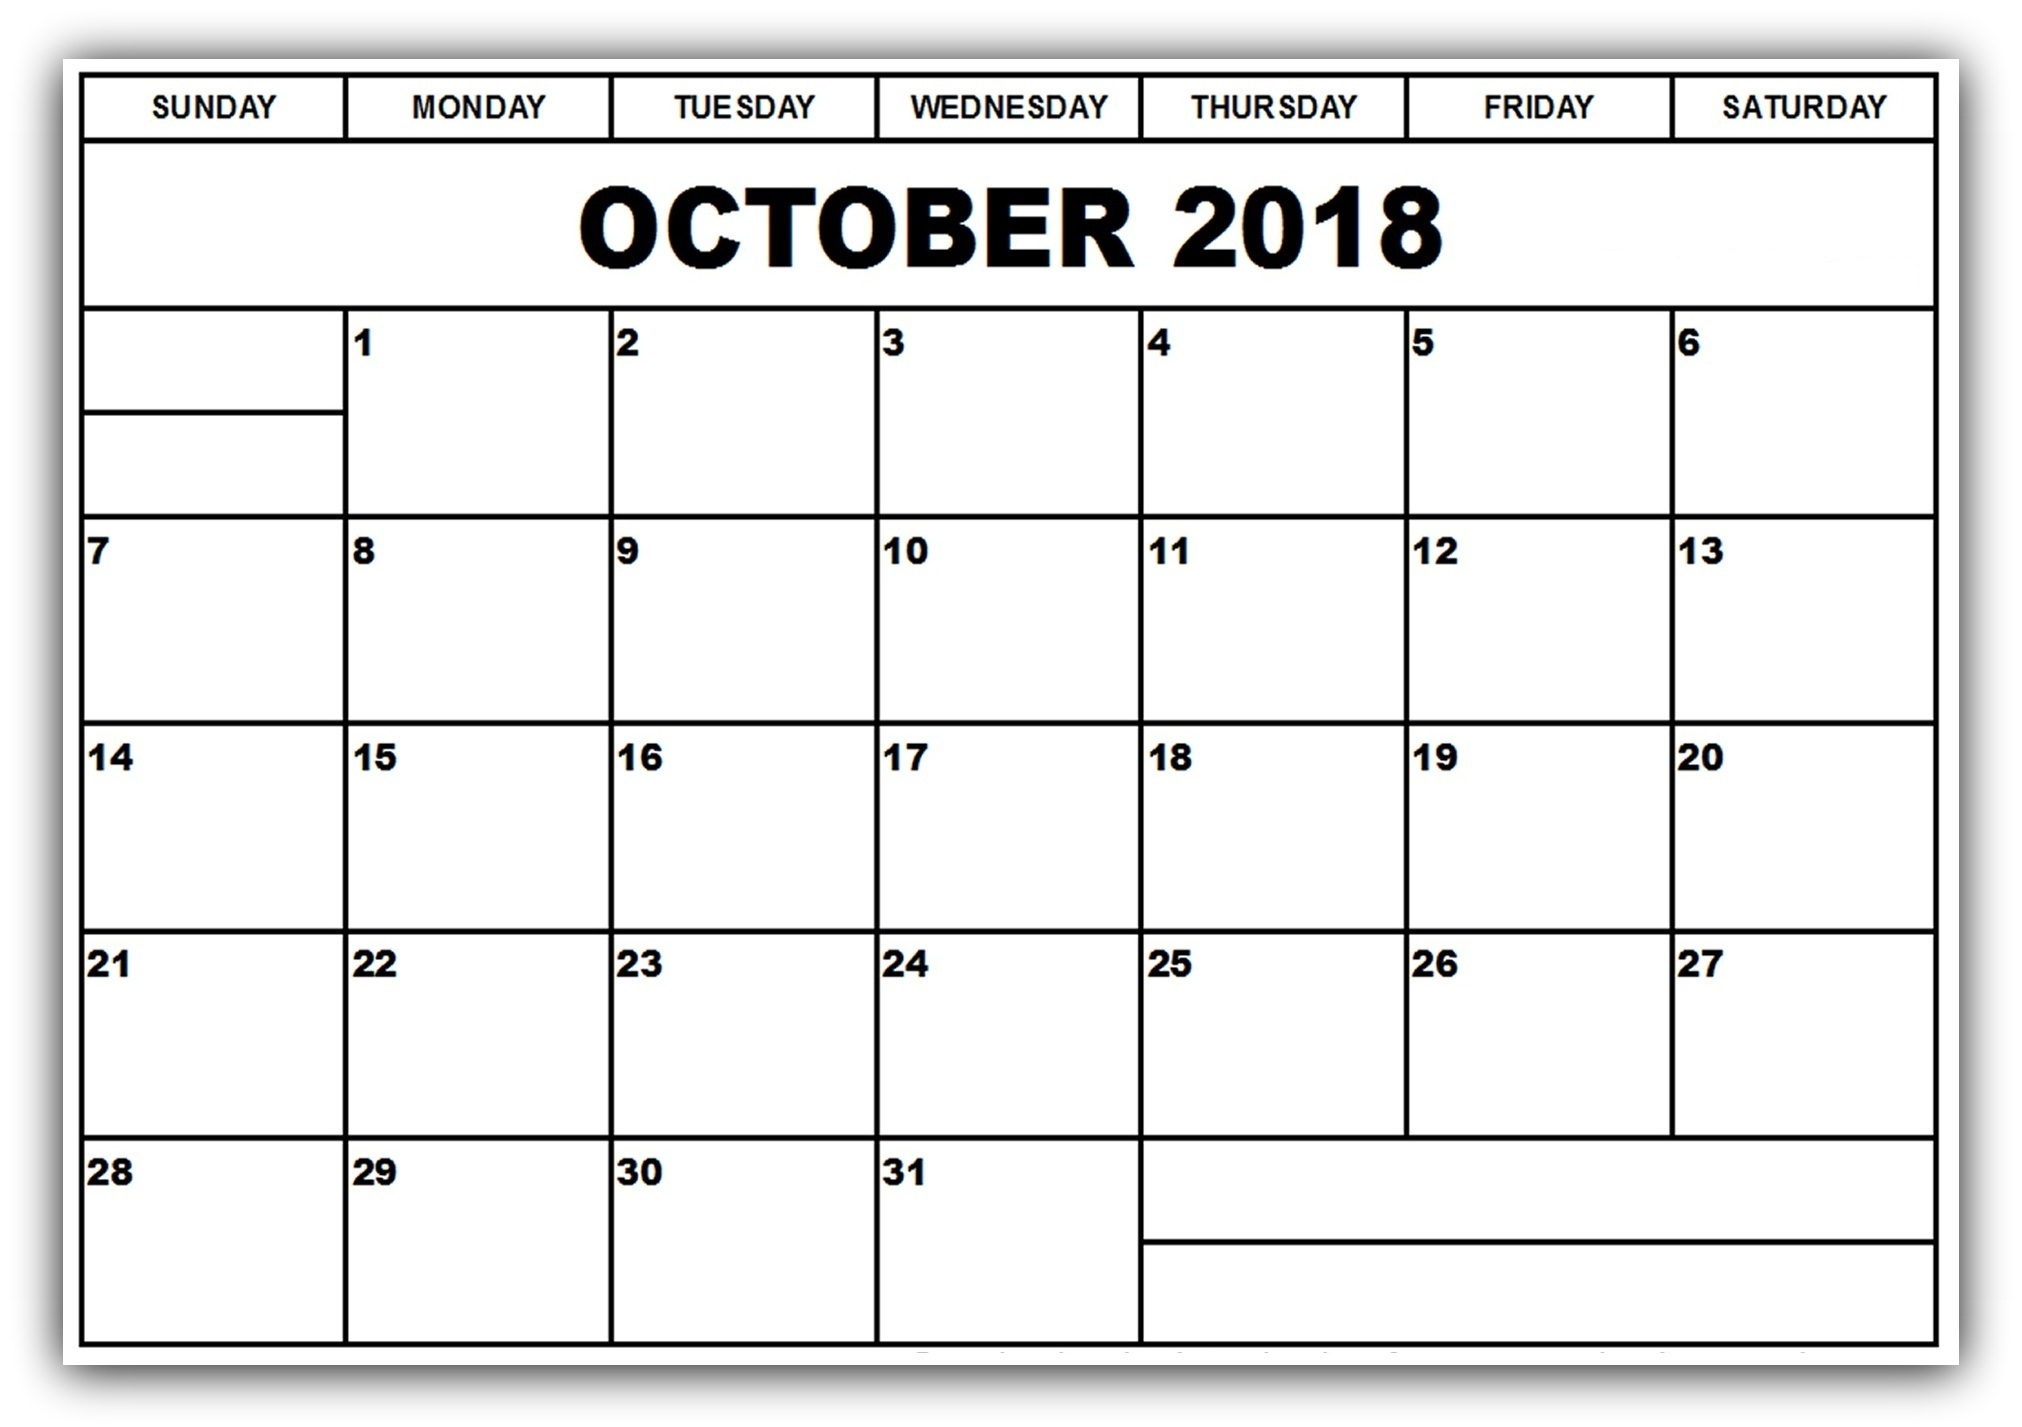 good calendar template october images gallery october 2018 October 2018 Calendar Printable Template erdferdf